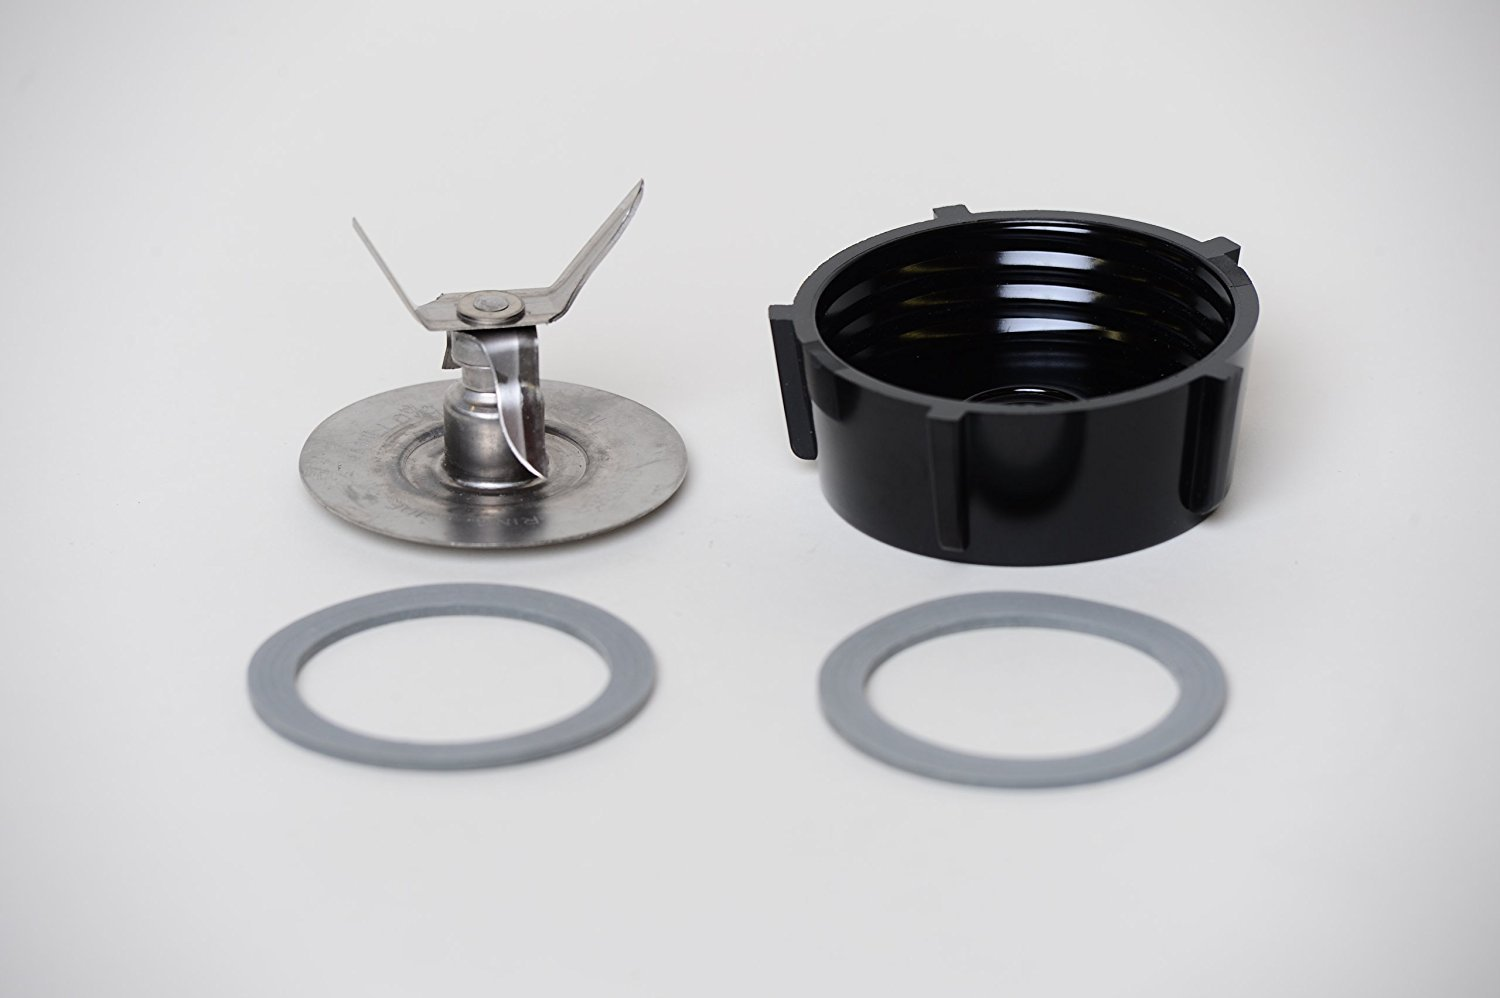 JGE Ice Crusher Blade with Replacement Jar Base Cap, 2 Rubber O Ring Sealing Ring Gaskets Combo,Fits Oster